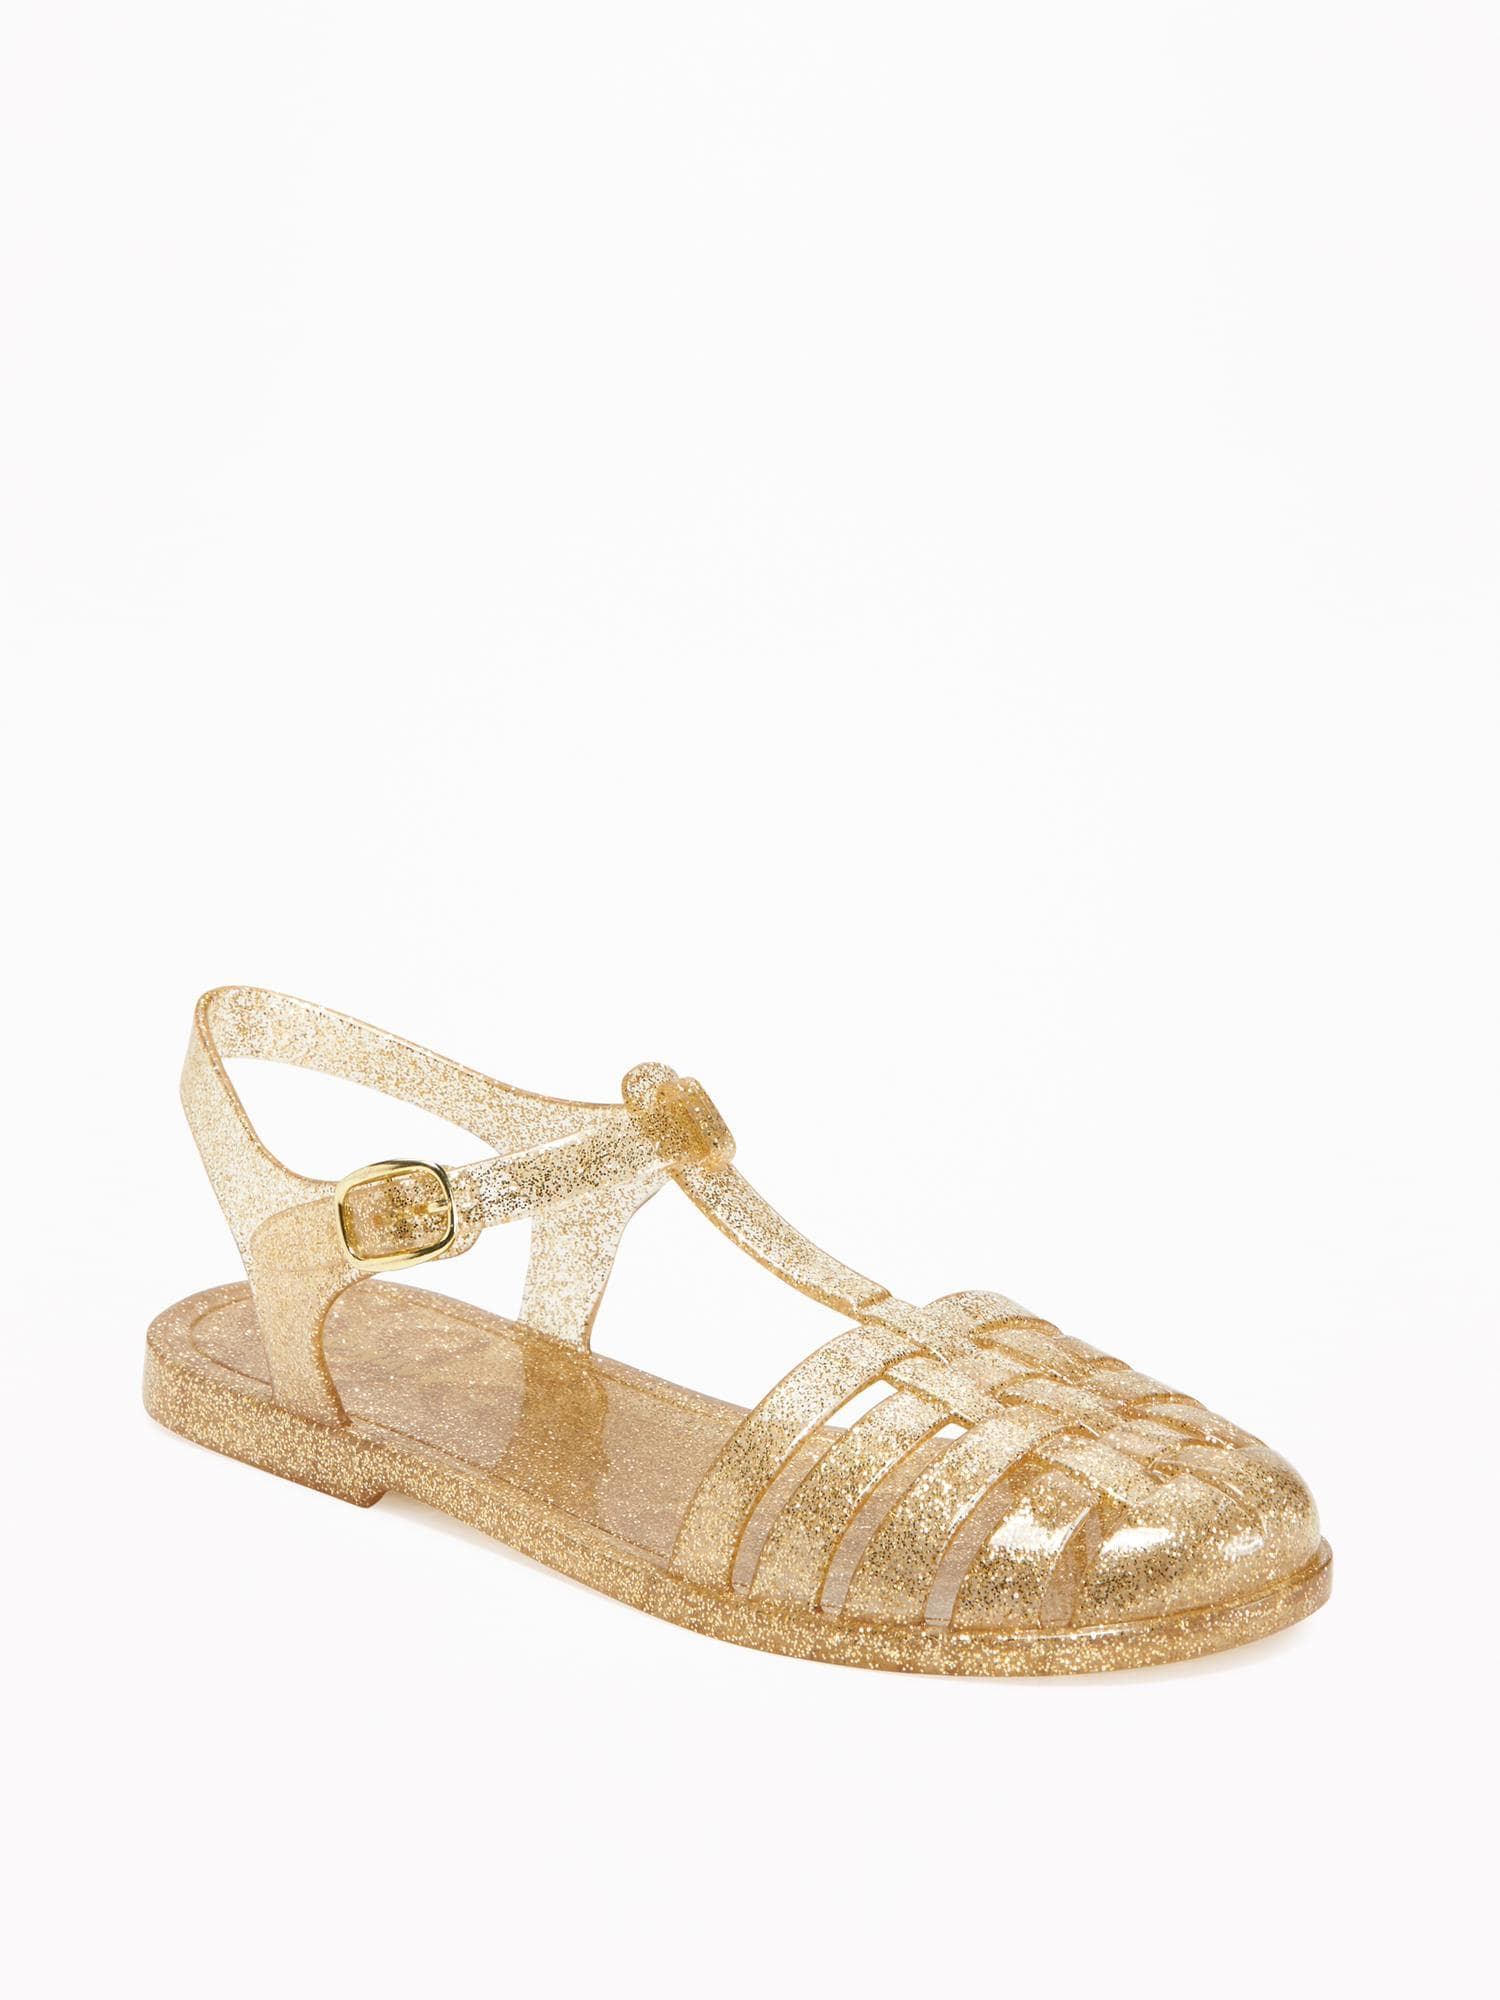 Fisherman Jelly Sandals for Girls | Old